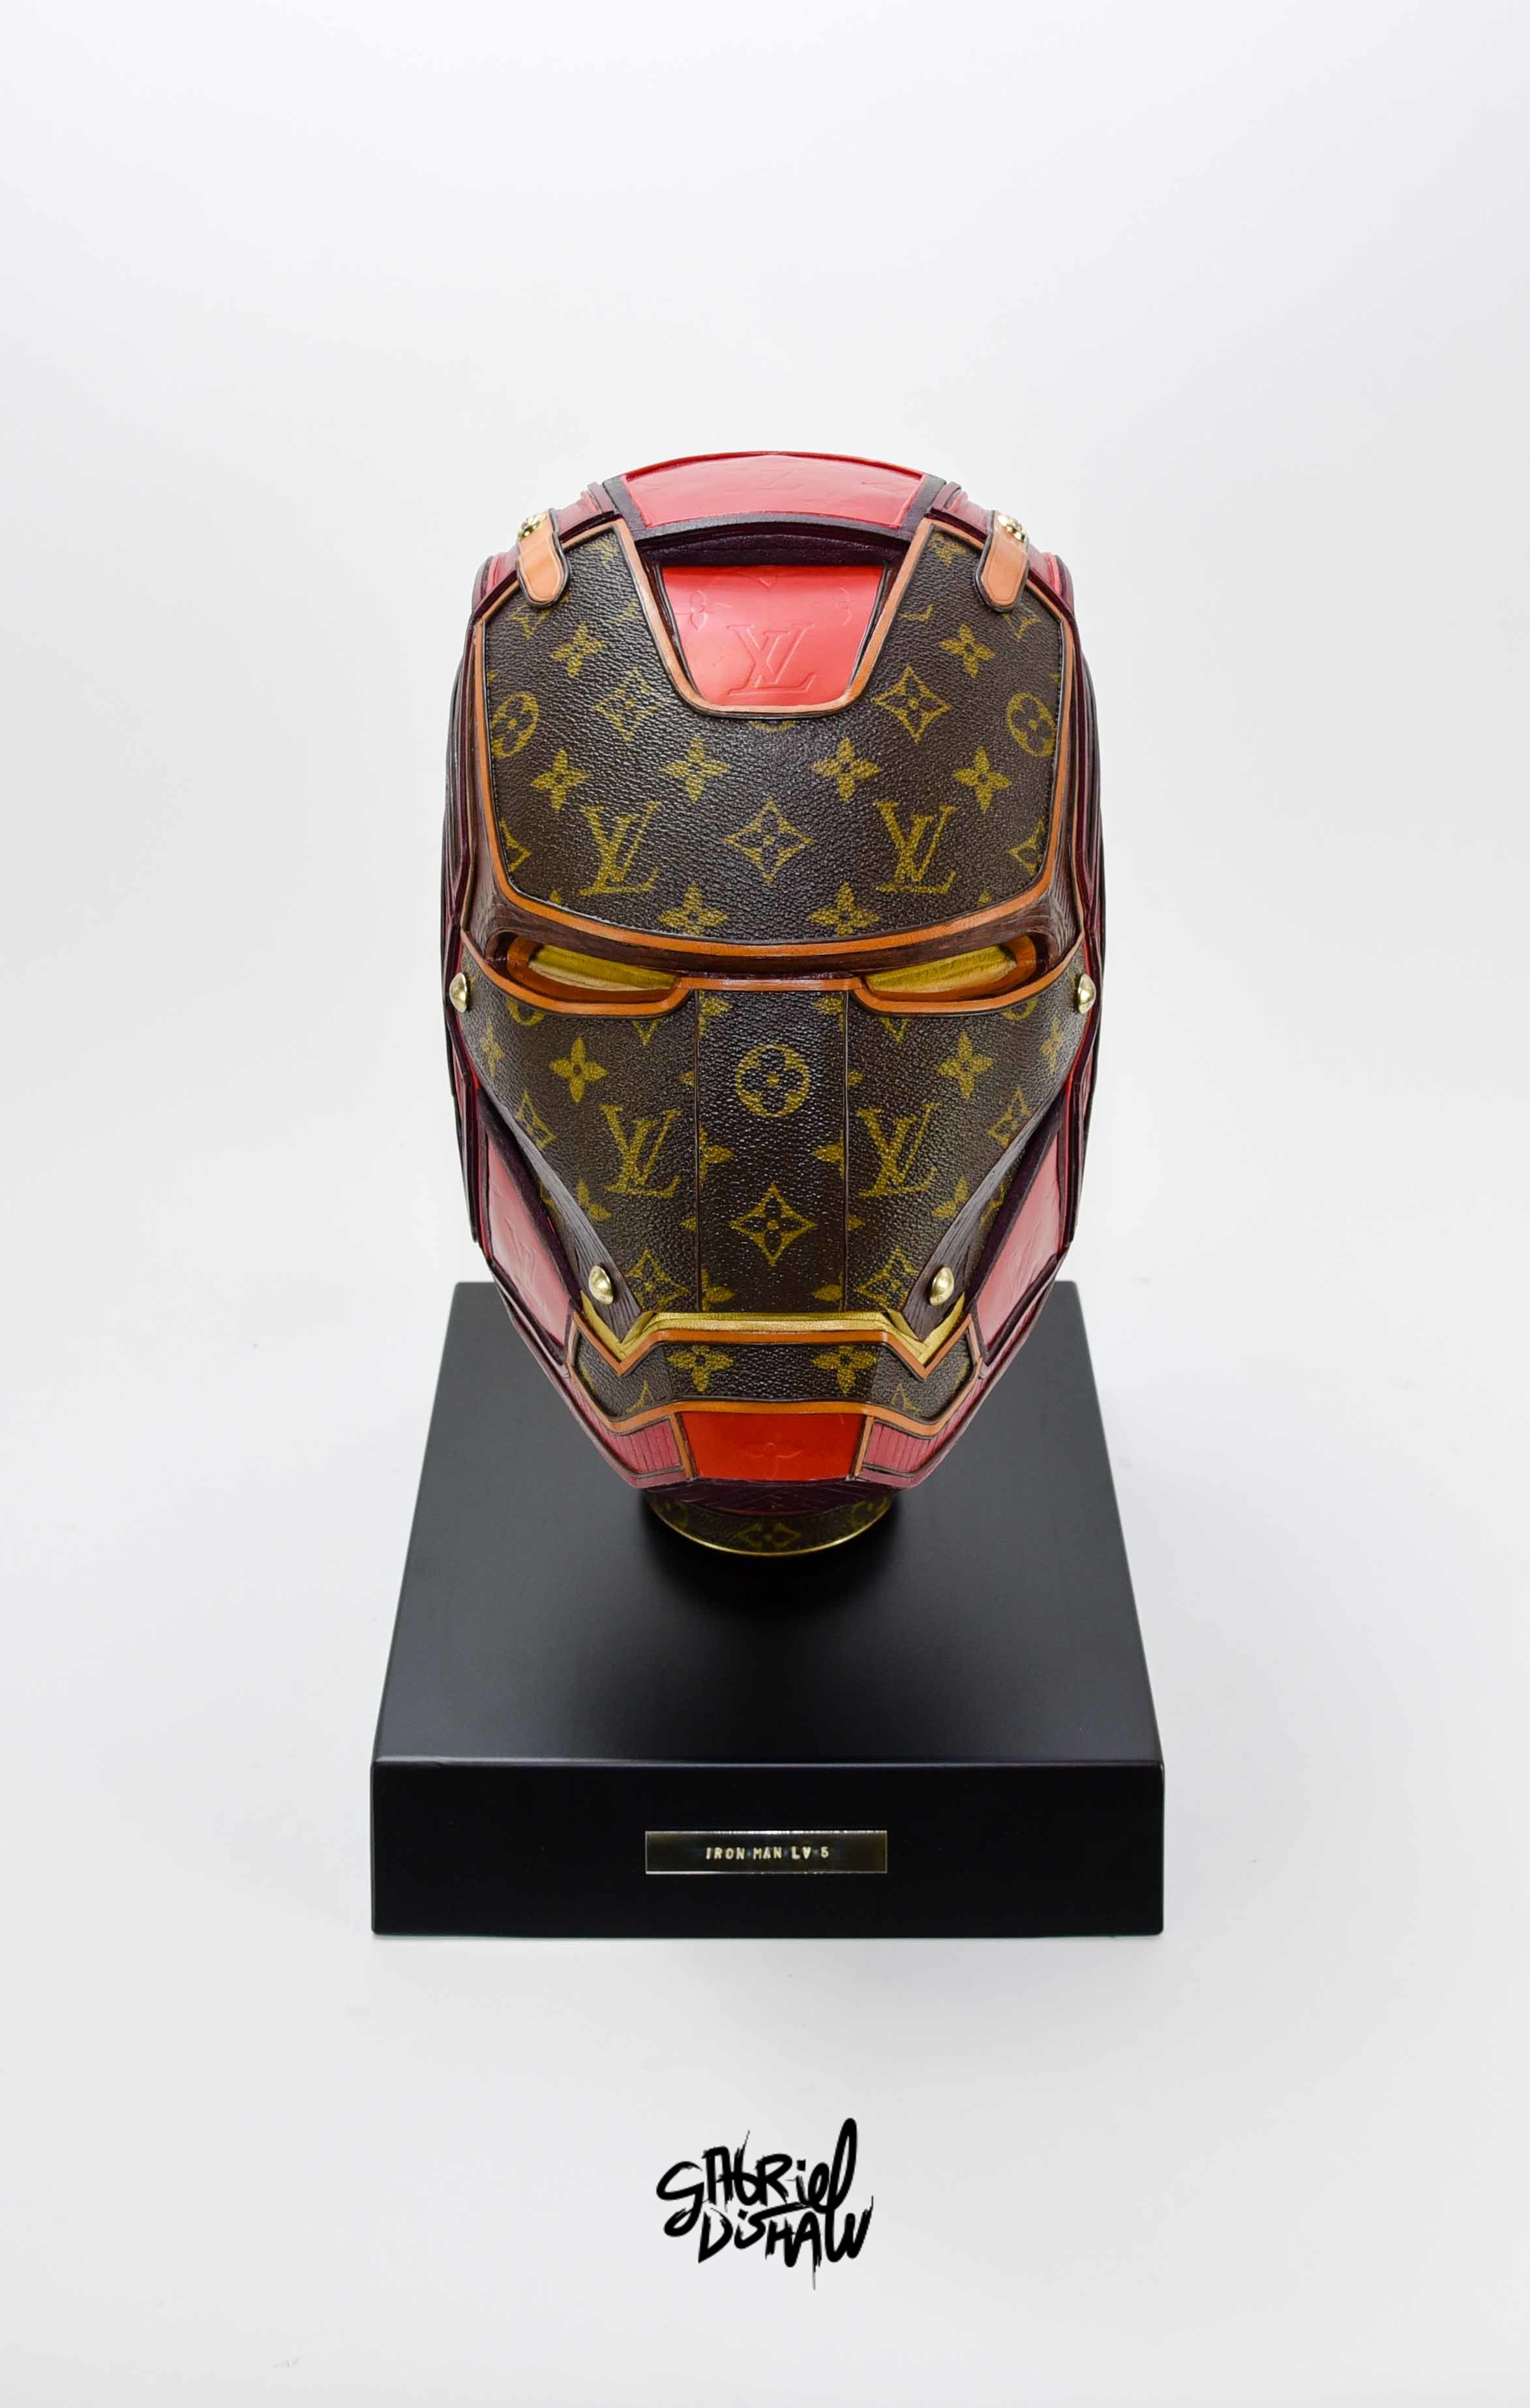 Gabriel Dishaw Iron Man LV Five-0926.jpg